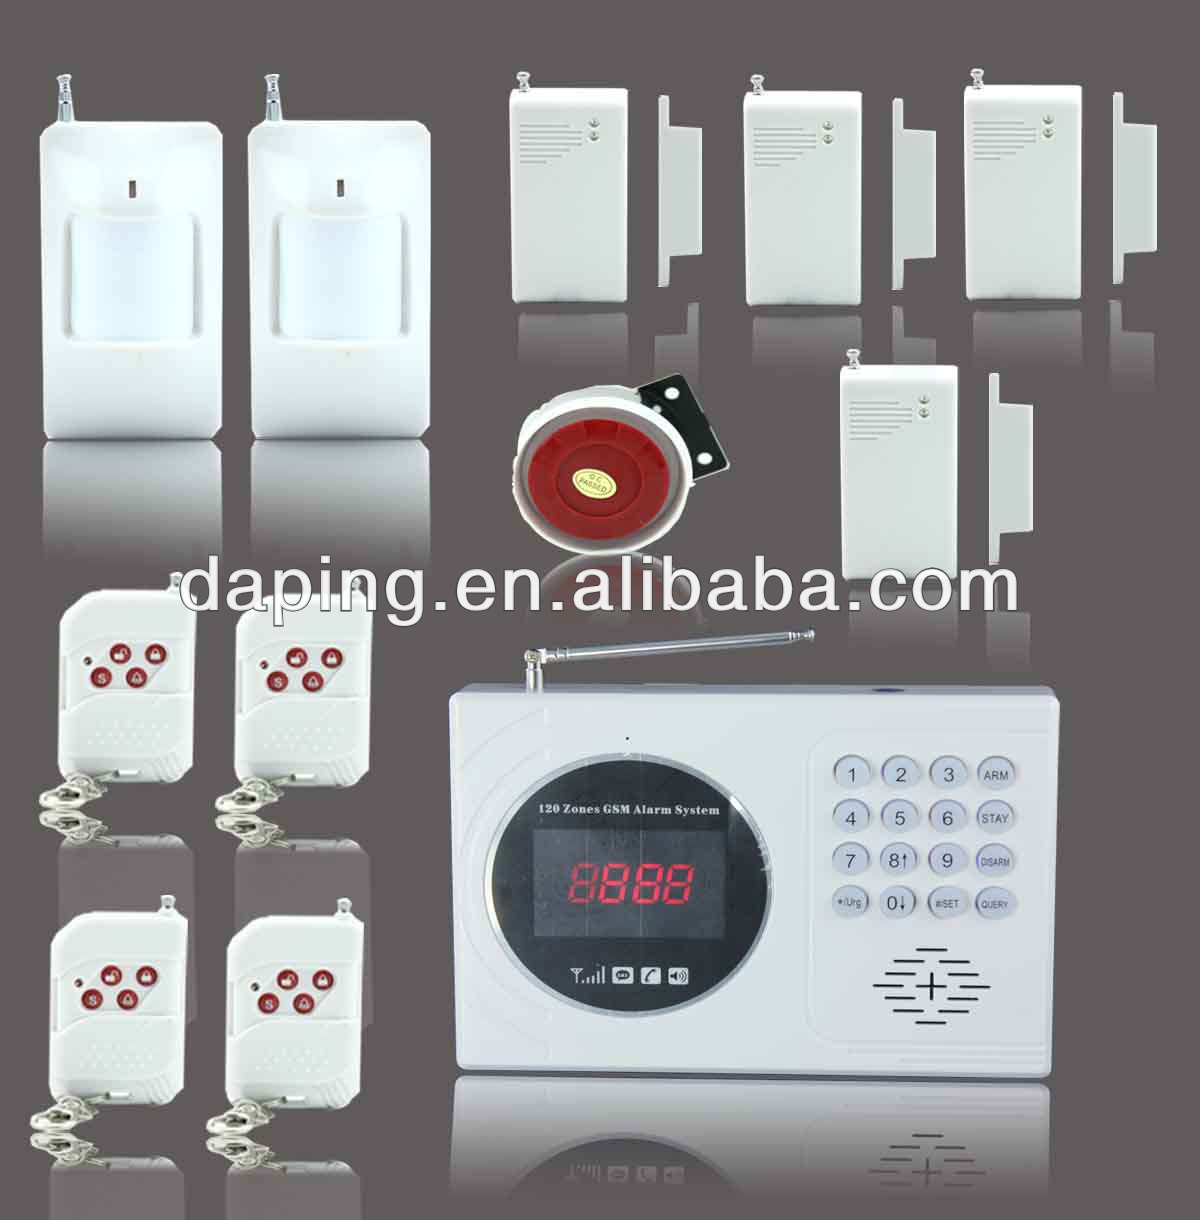 Wired intruder alarm wired intruder alarm suppliers and wired intruder alarm wired intruder alarm suppliers and manufacturers at alibaba solutioingenieria